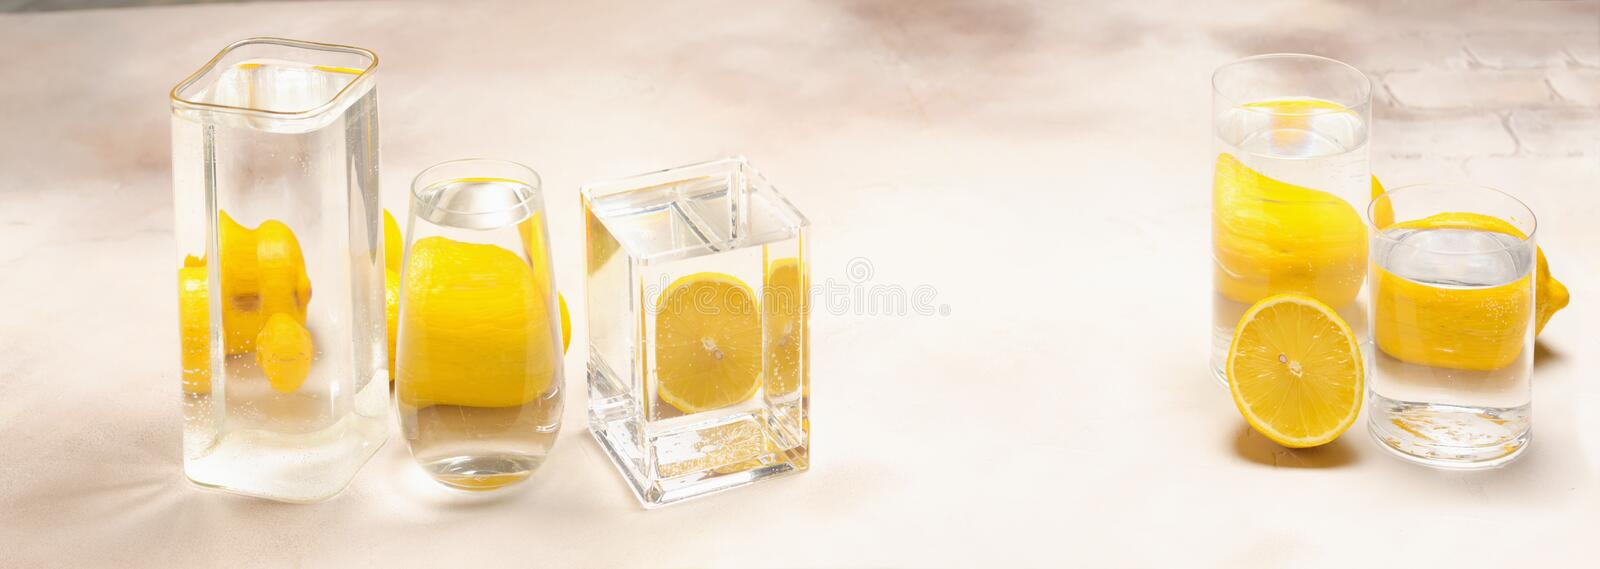 Foods distorted through liquid and glass on light background. Perspective, fractured and skewed images of common foods as seen through vessels filled with water stock photos